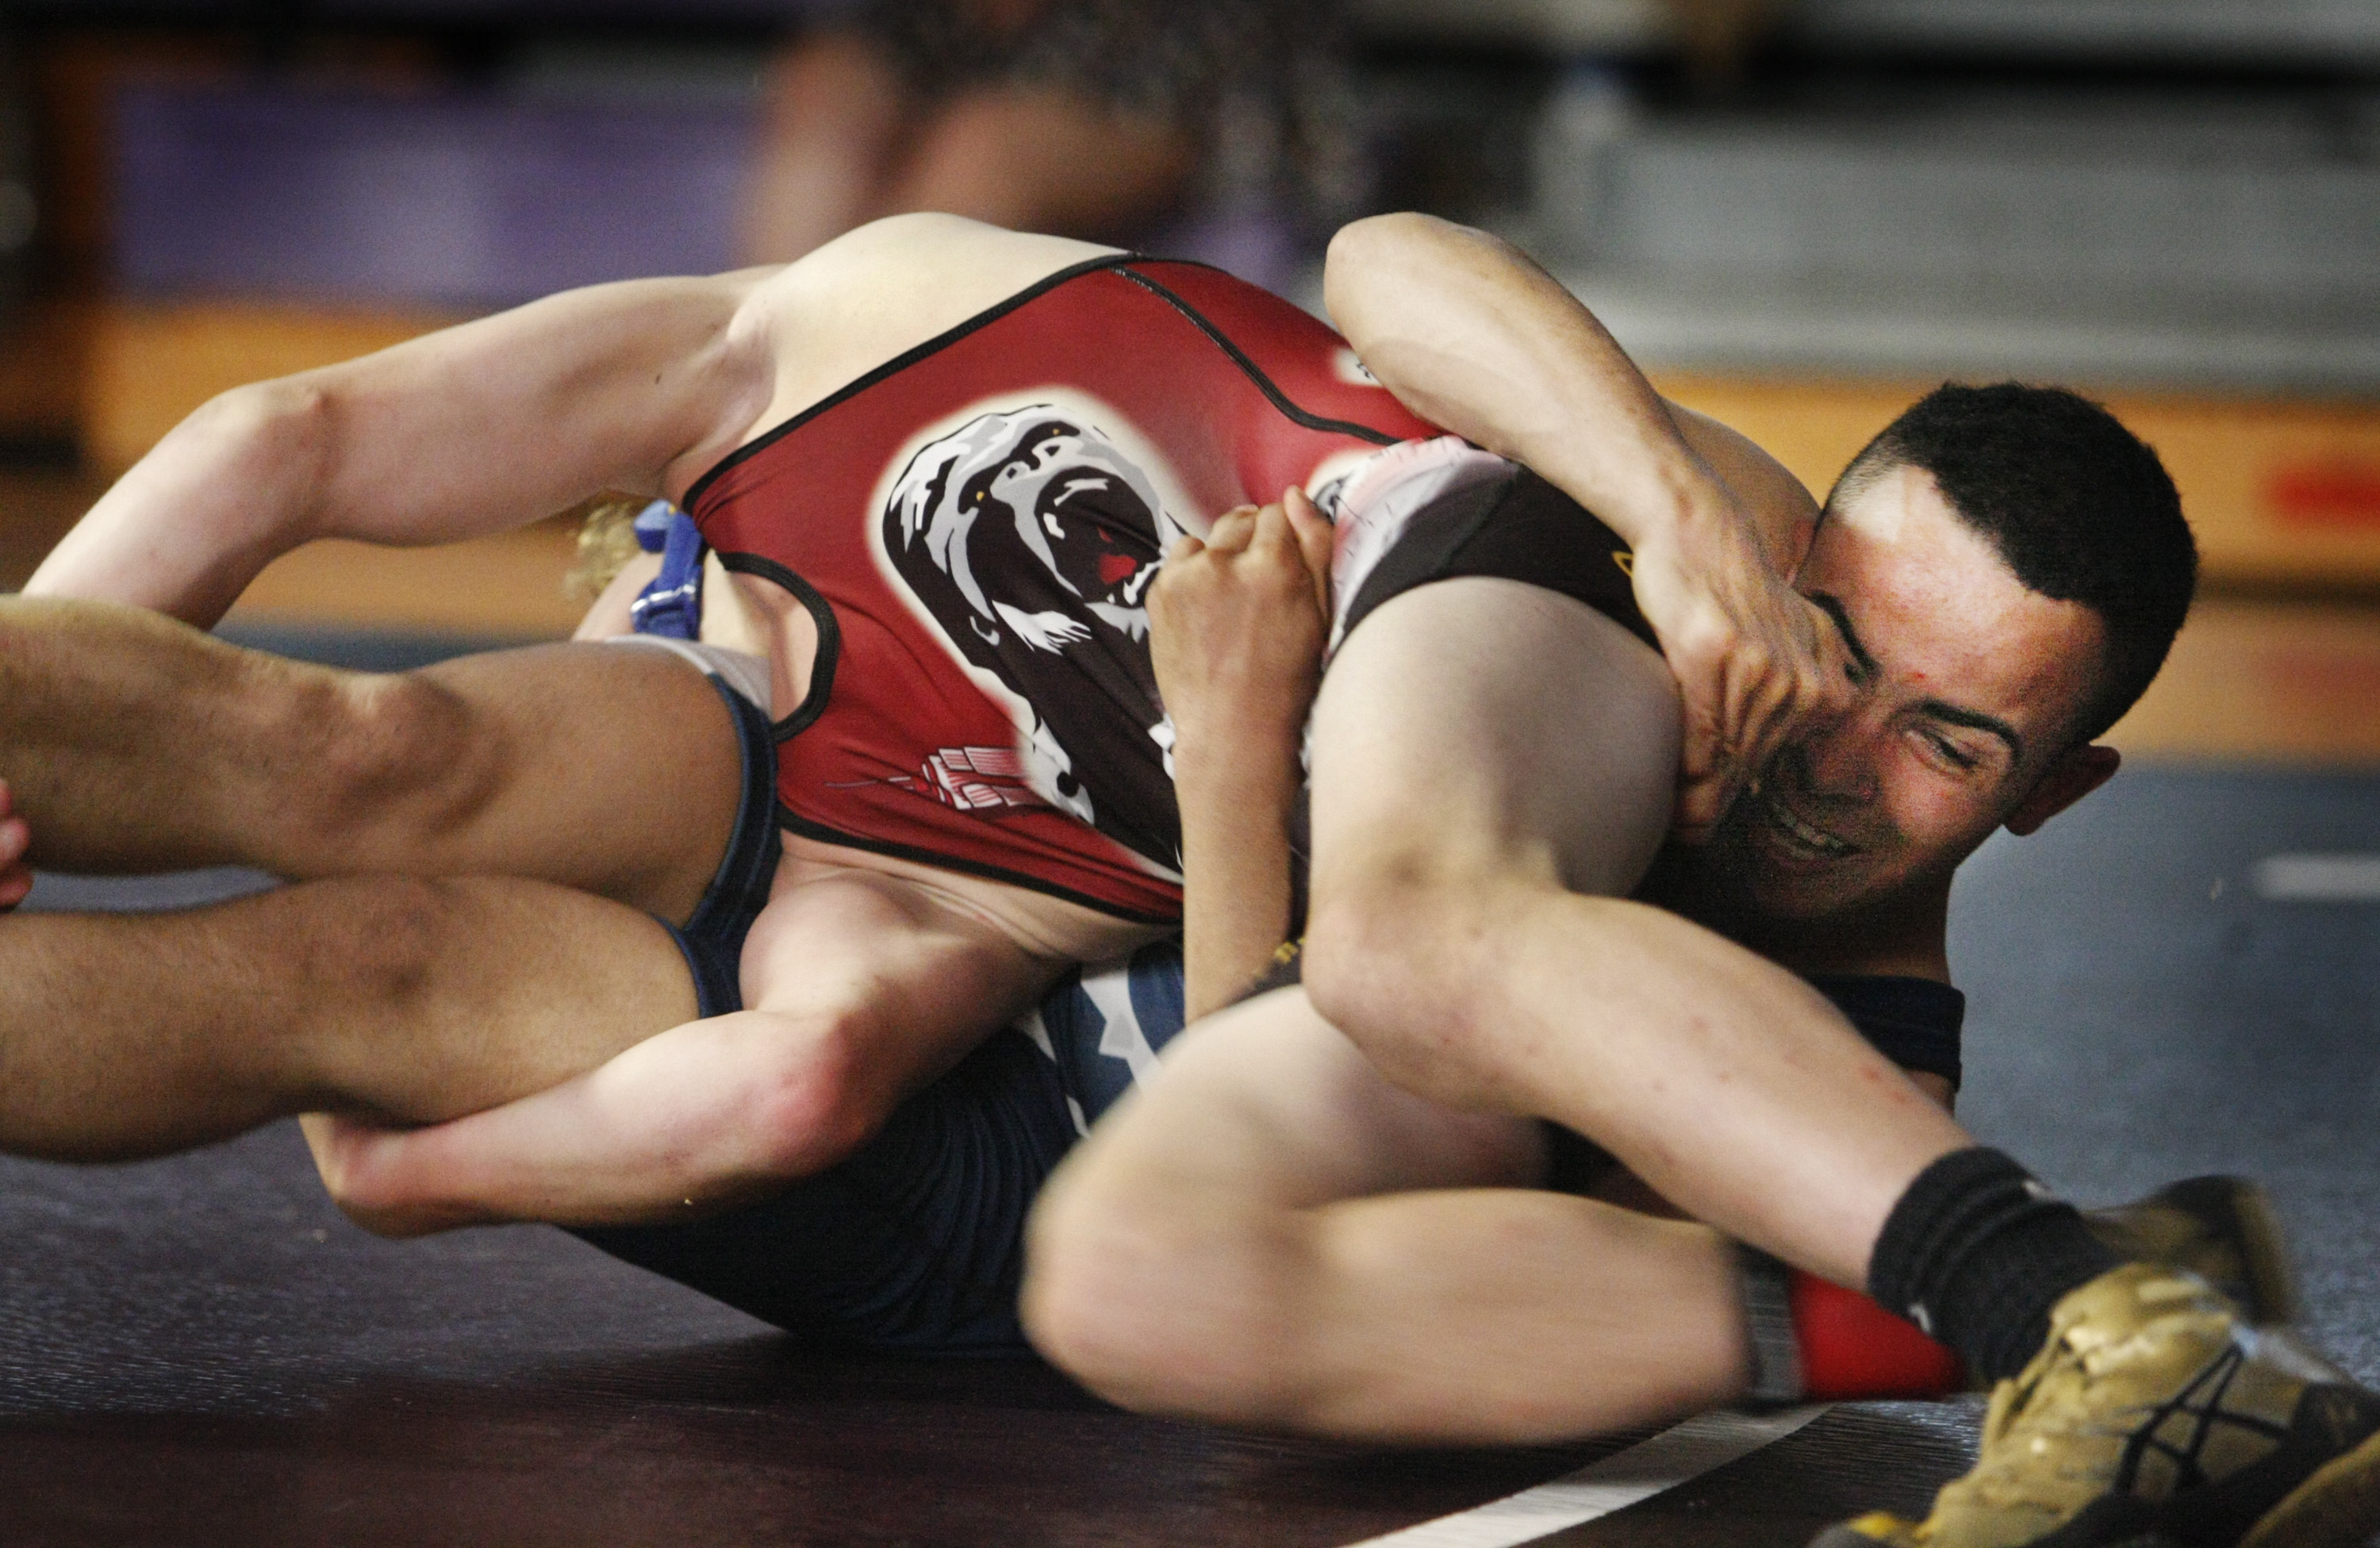 Kidayer Alijubyly of Porltand, right, grapples with Phillip Moomey of Nebraska at Marshwood High School in South Berwick as part of a 30-year arrangement between the two states.   Jill Brady / Staff Photographer